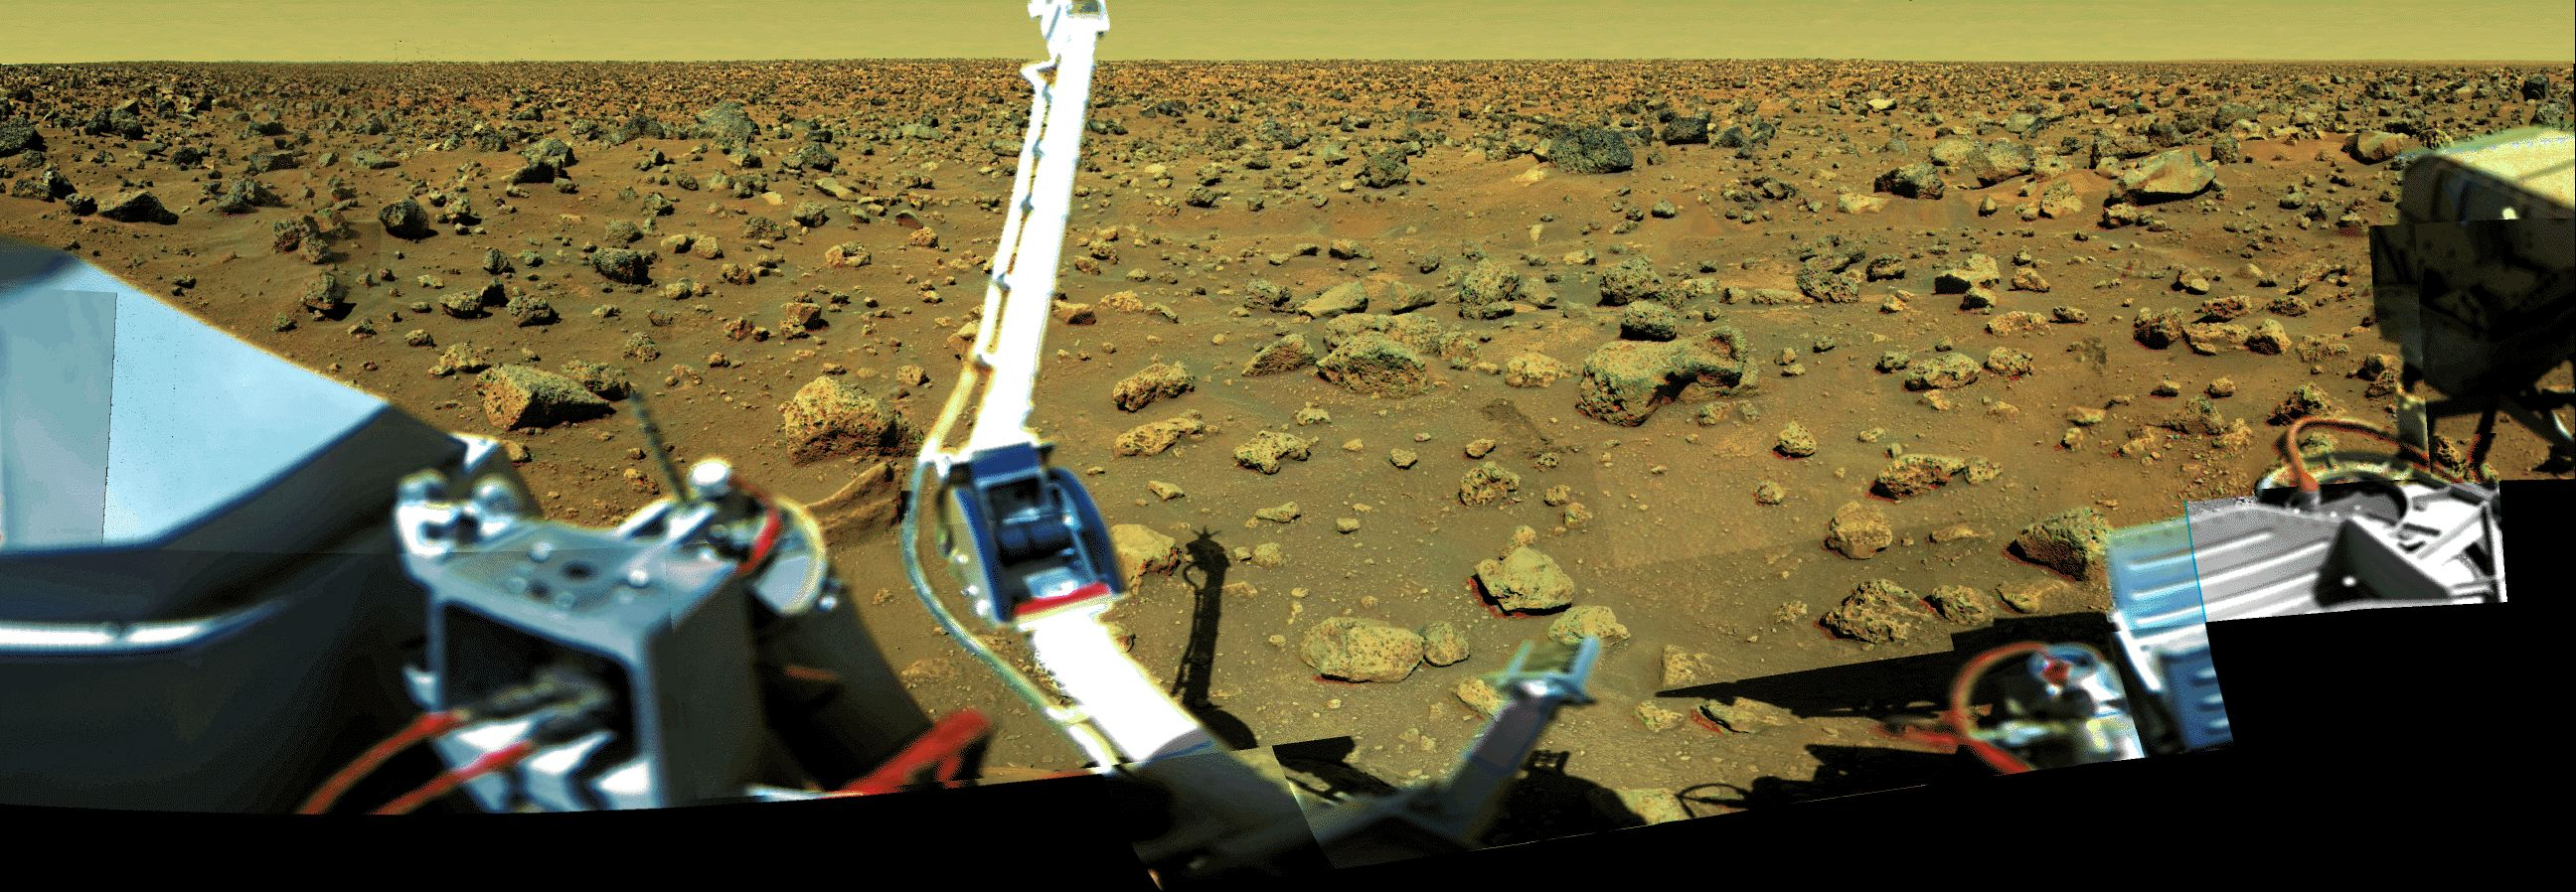 Curiosity Rover | Ecogirl & Cosmoboy's Blog | Page 3